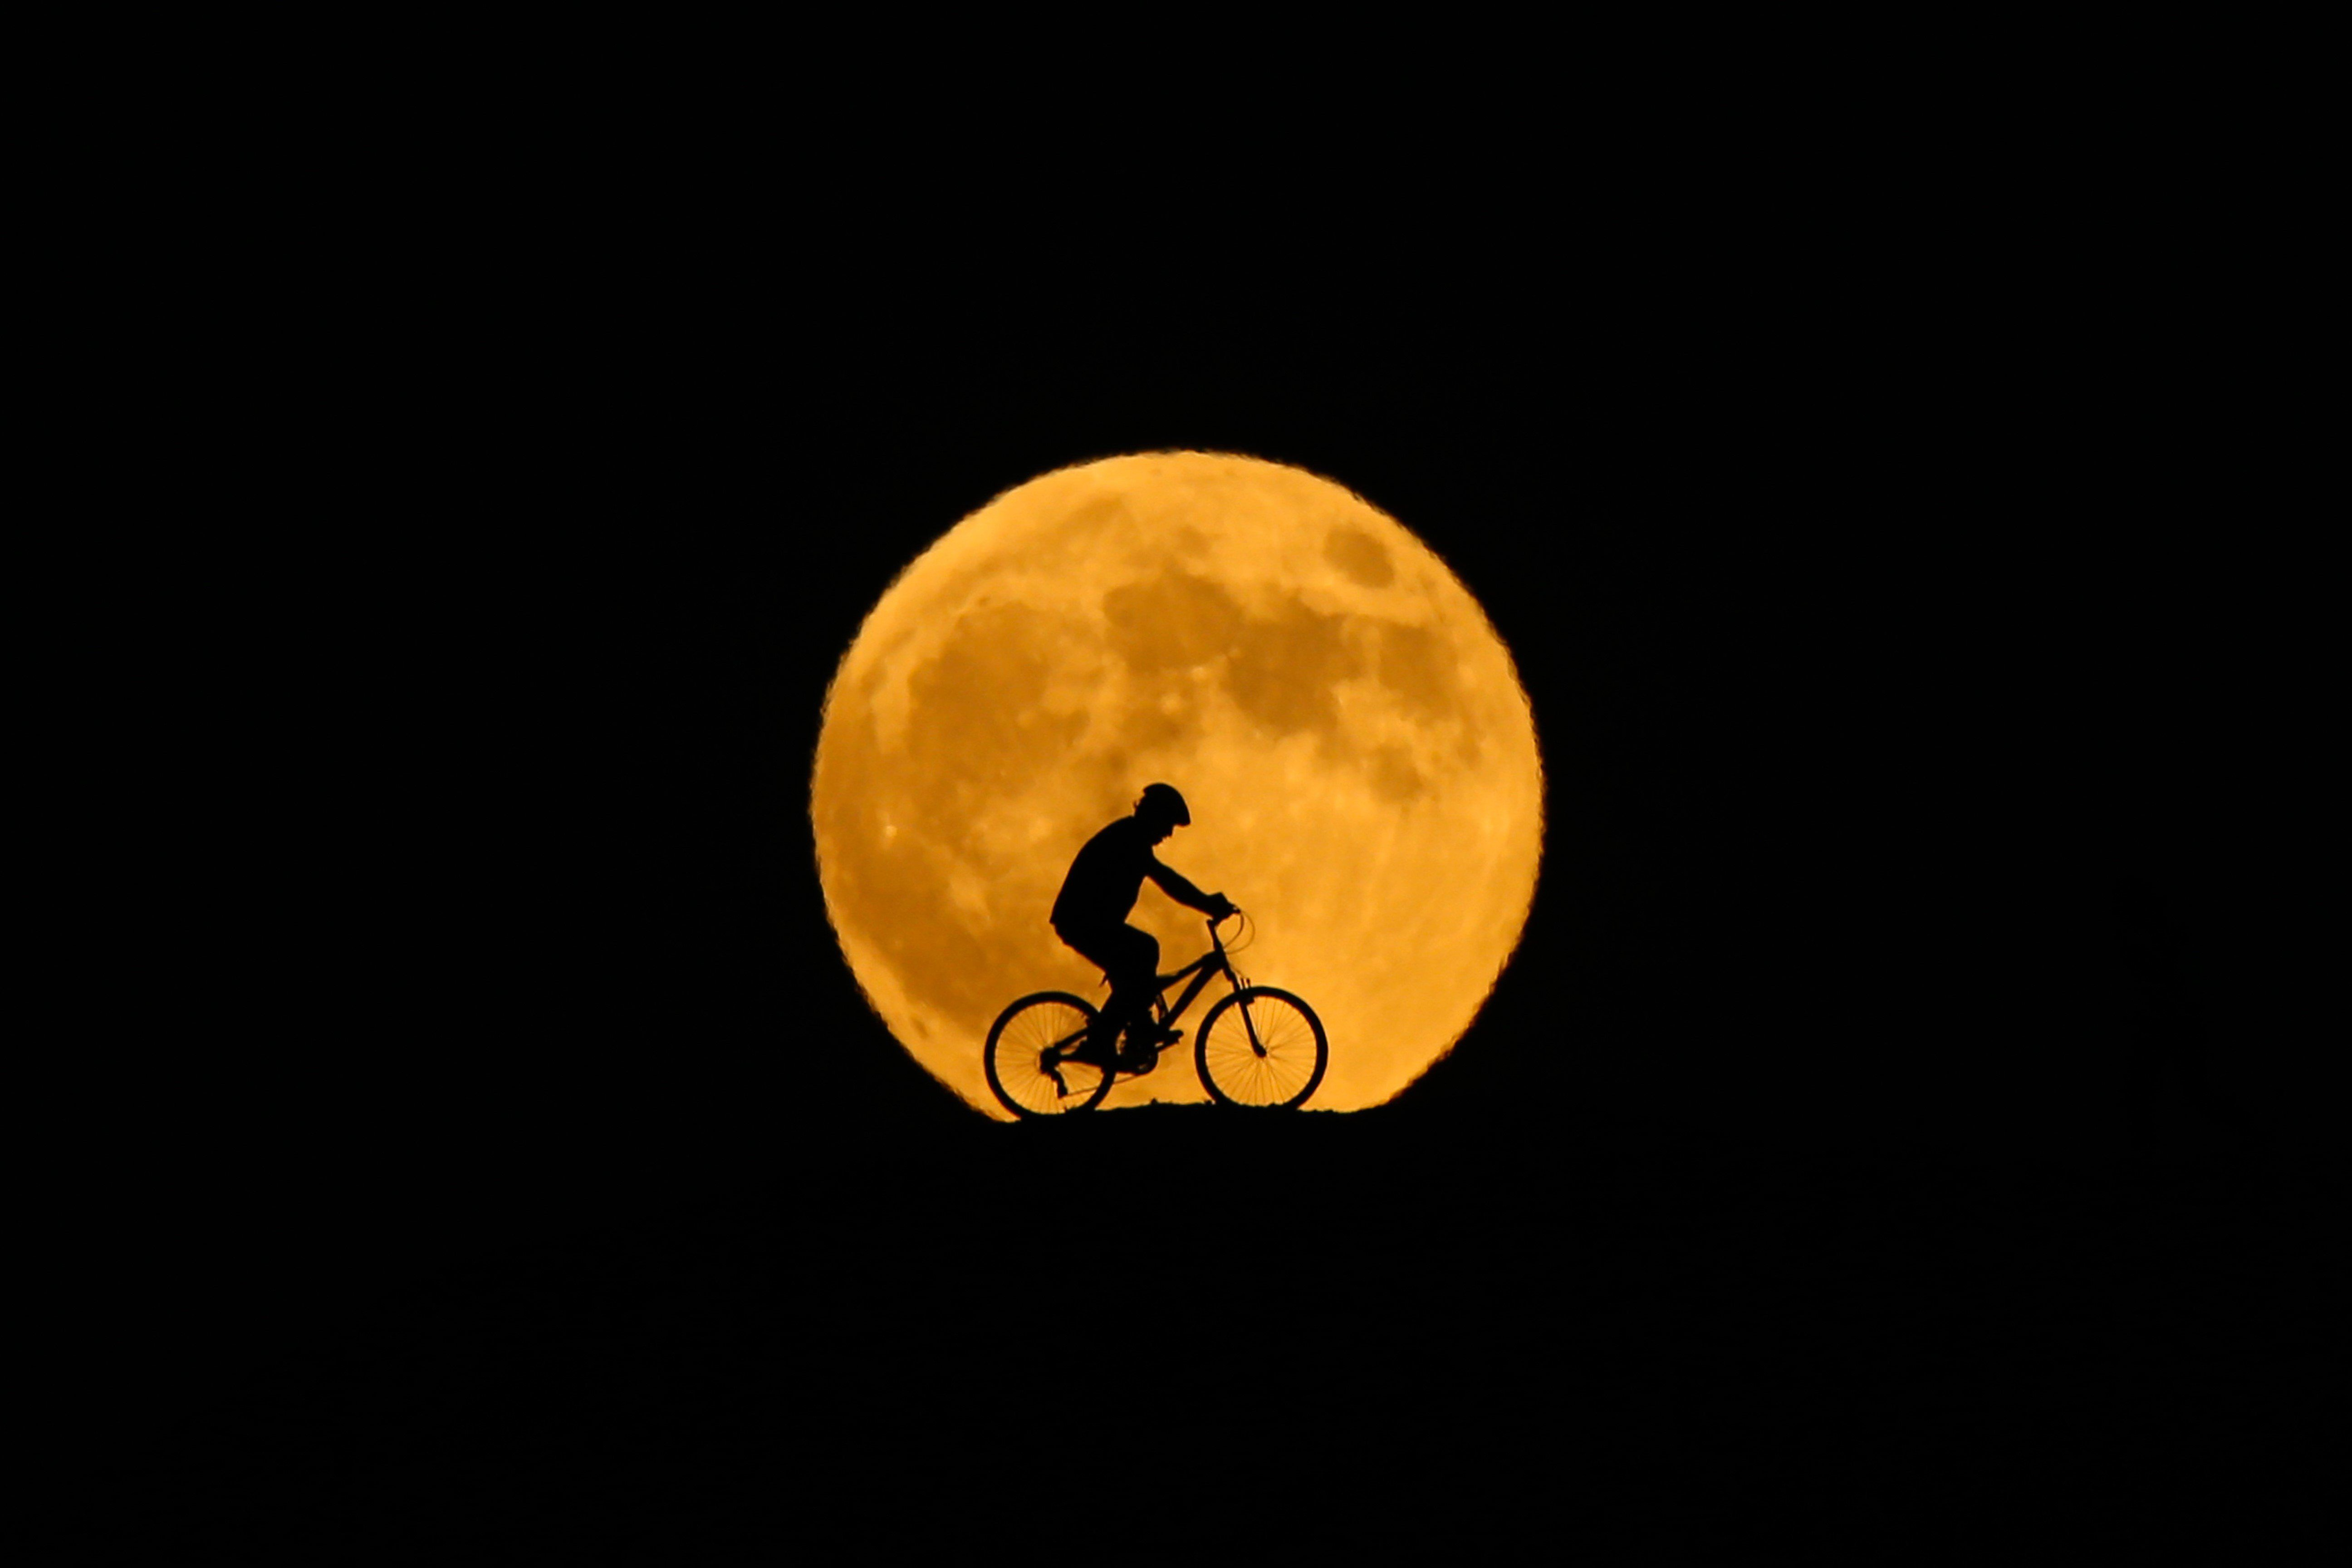 Behind the silhouette of a man riding a bicycle in Van,